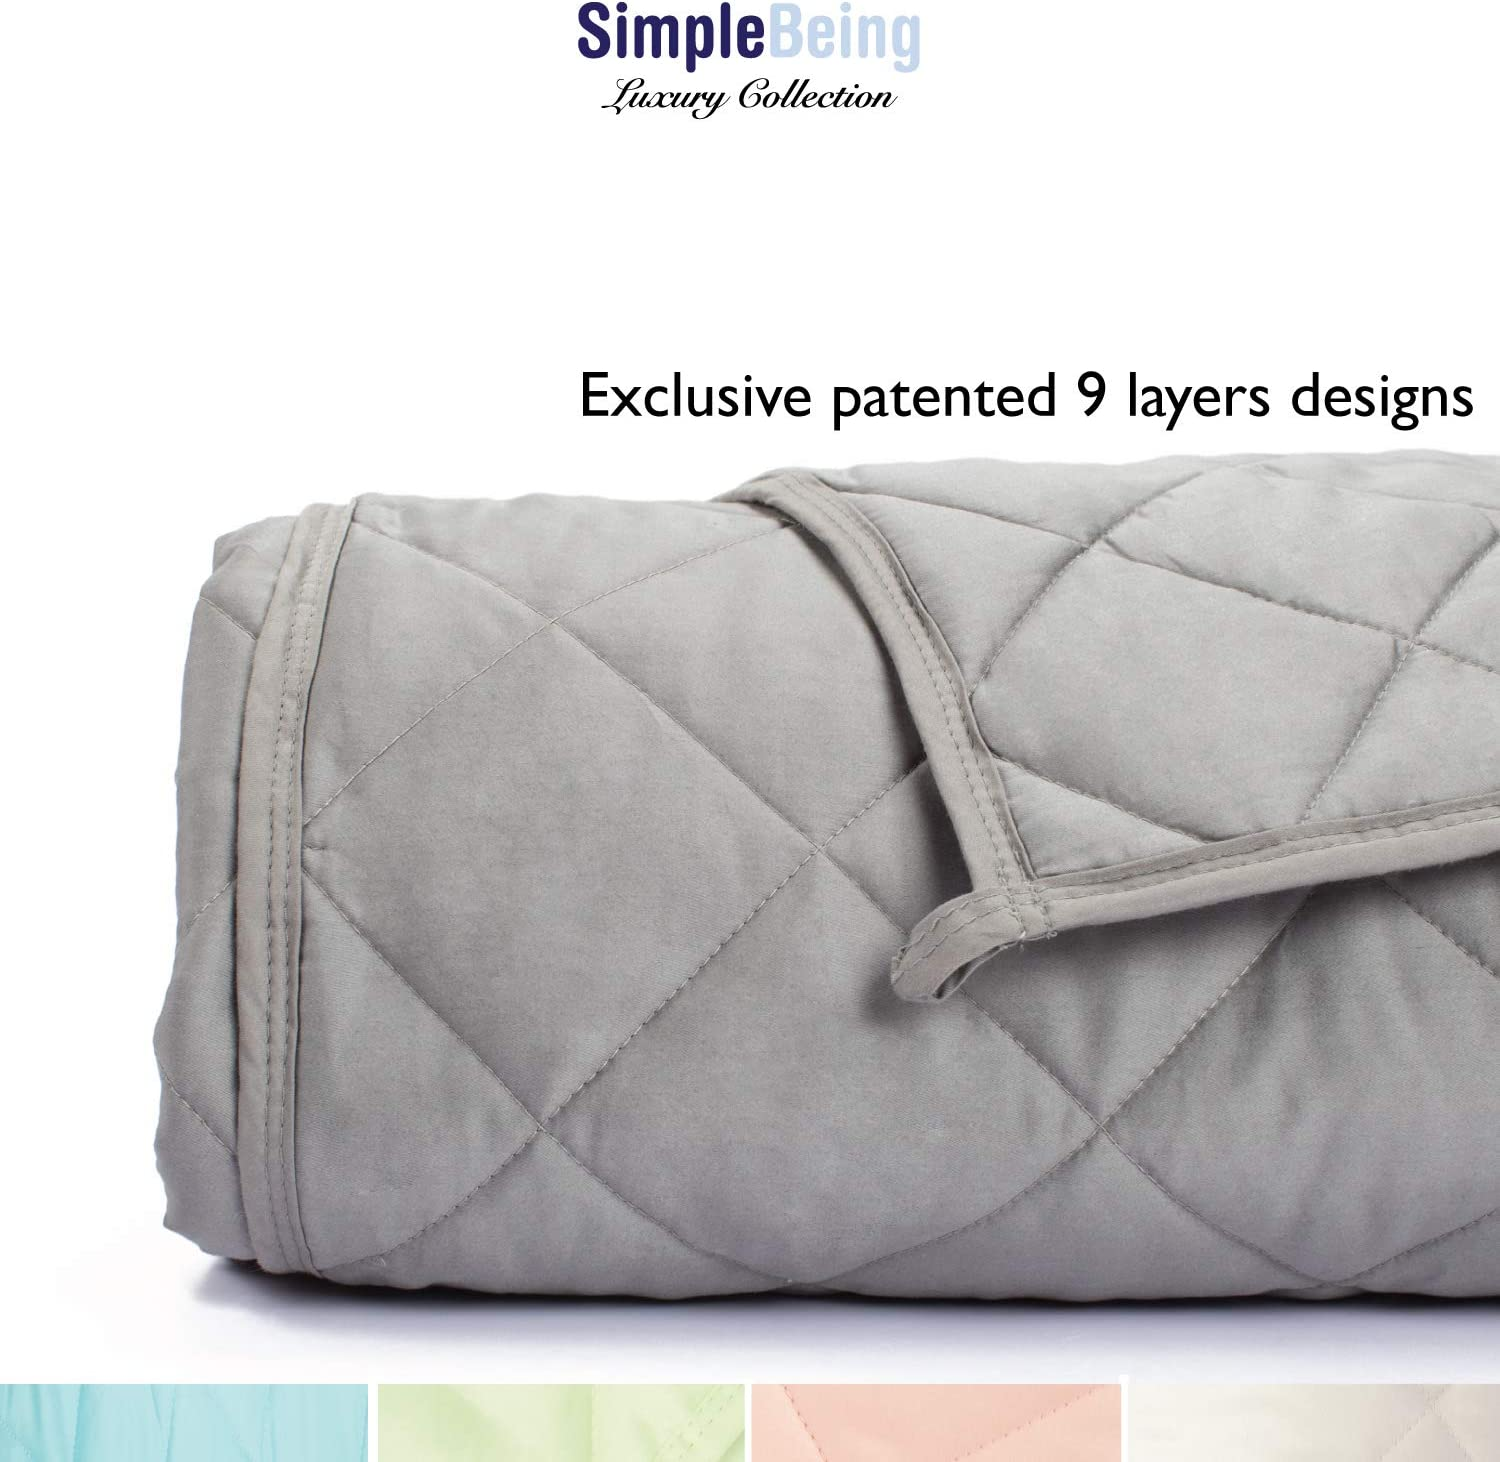 Simple Being Weighted Blanket 3.0, 80x87 25lb, Patent Pending 9 Layers Design, Best Heavy Calming Blanket, Cooling Cotton Glass Beads, High Degrees of Breathability, Stone Grey